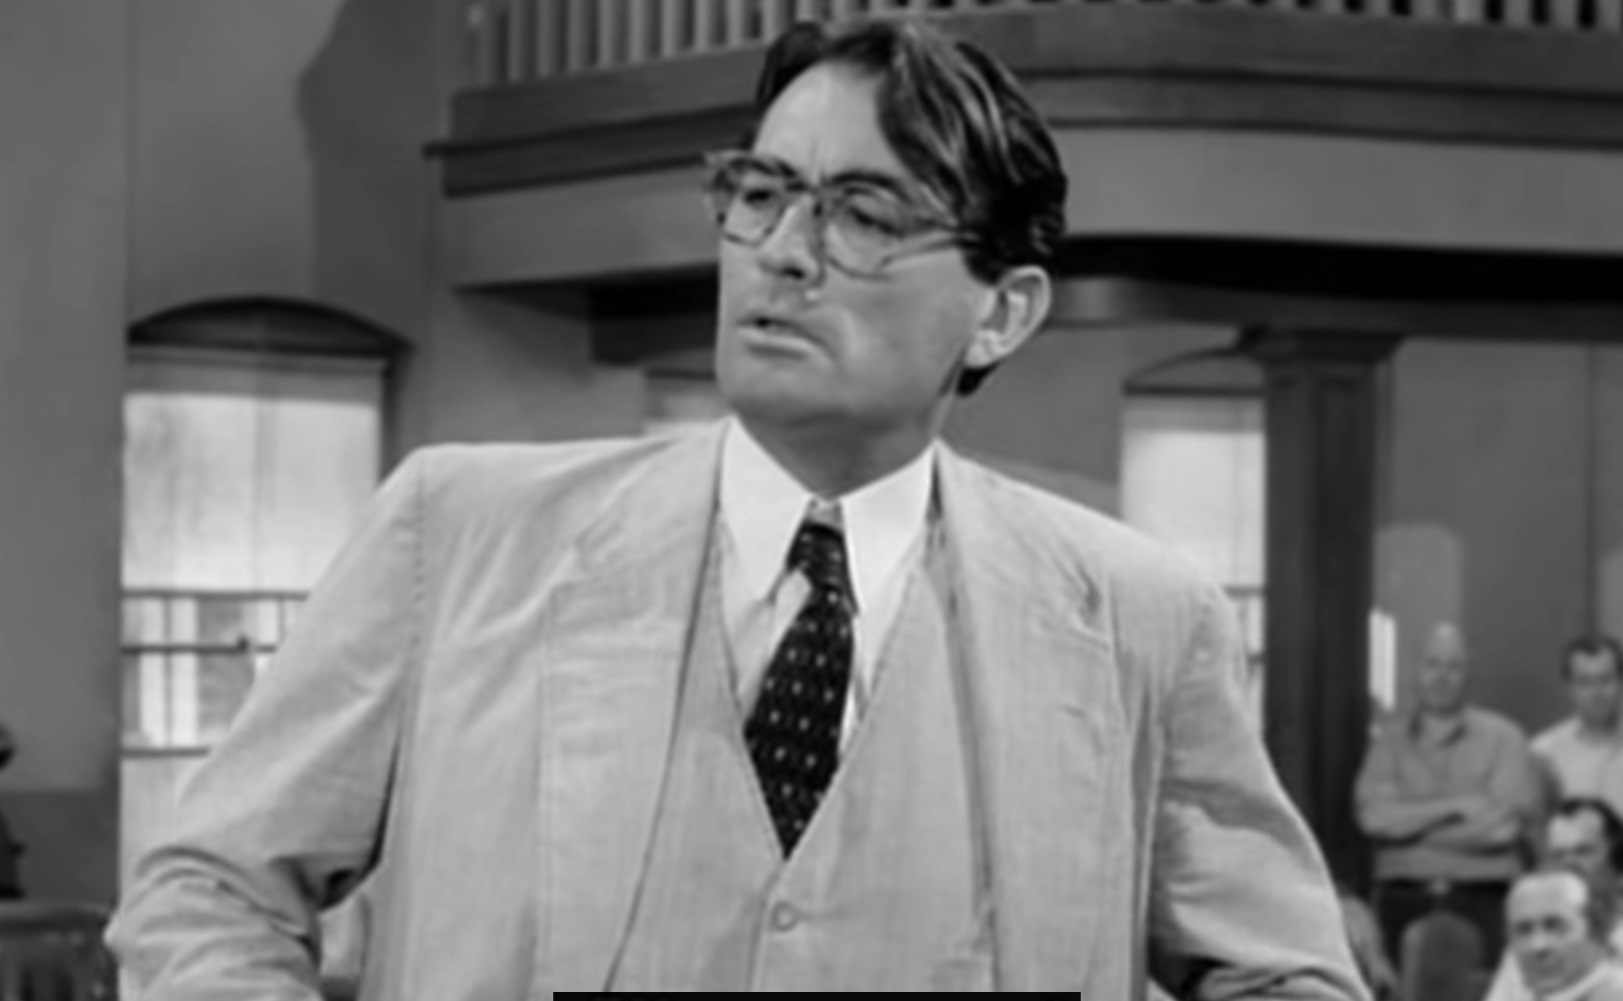 atticus finch going against the grain To kill a mockingbird chapter questions: chapter 1 1 what do you learn in this chapter about maycomb, atticus finch and his father was sorely against.